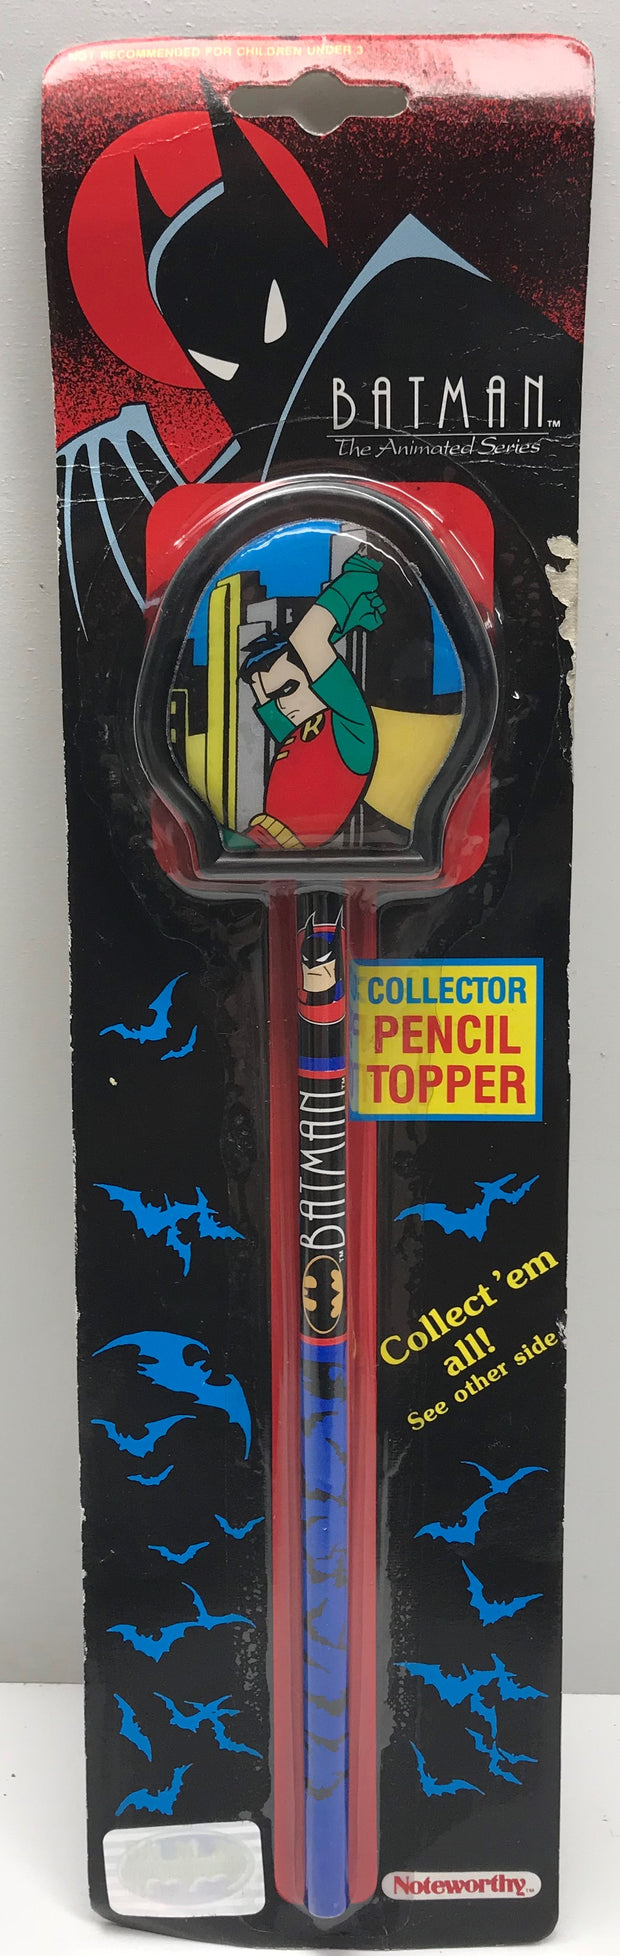 TAS038320 - 1992 Noteworthy Batman The Animated Series Pencil Topper - Robin